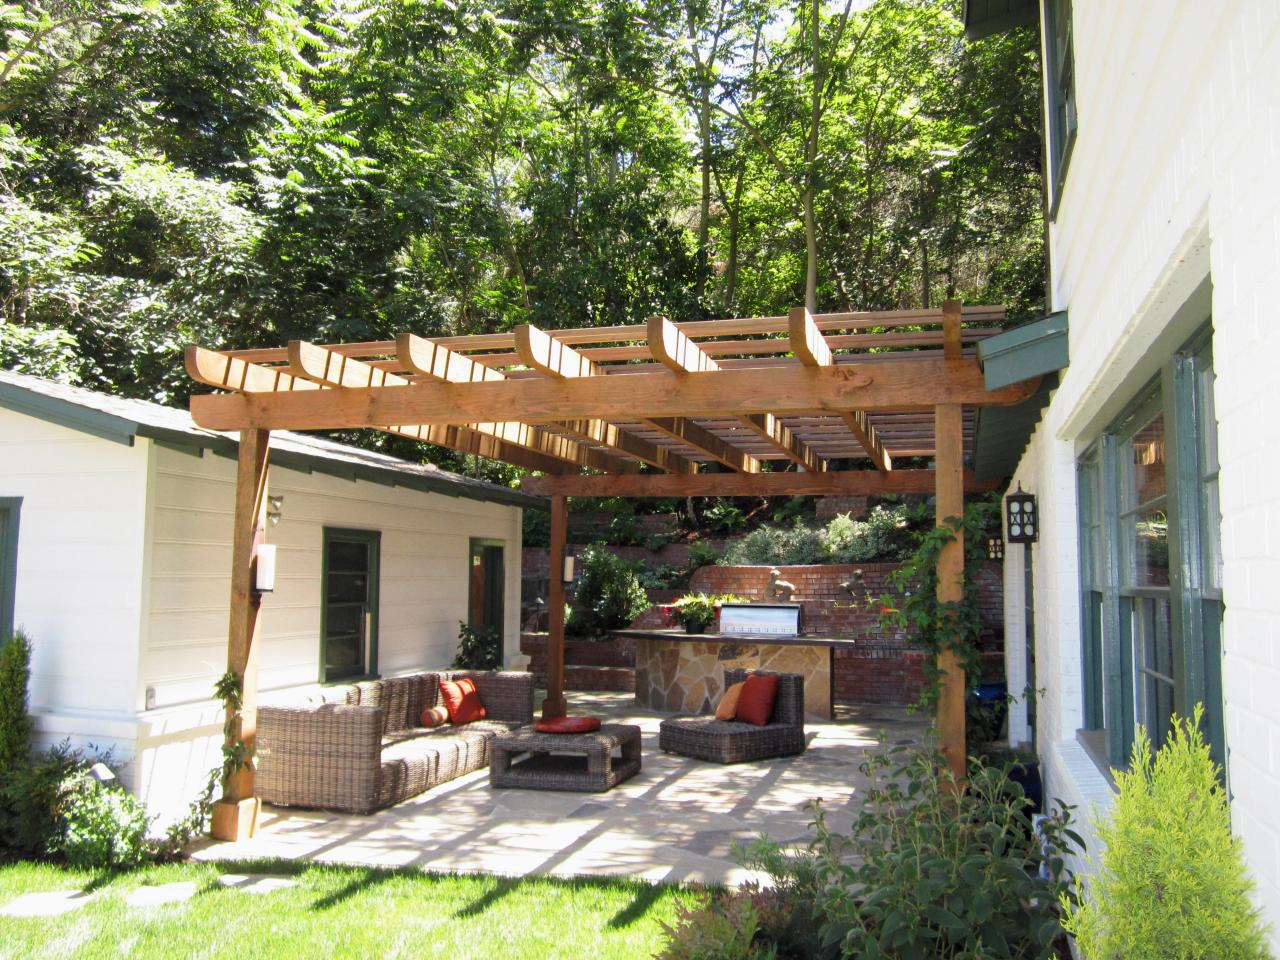 Small Patio Garden Pergola Traditional Landscape Exciting